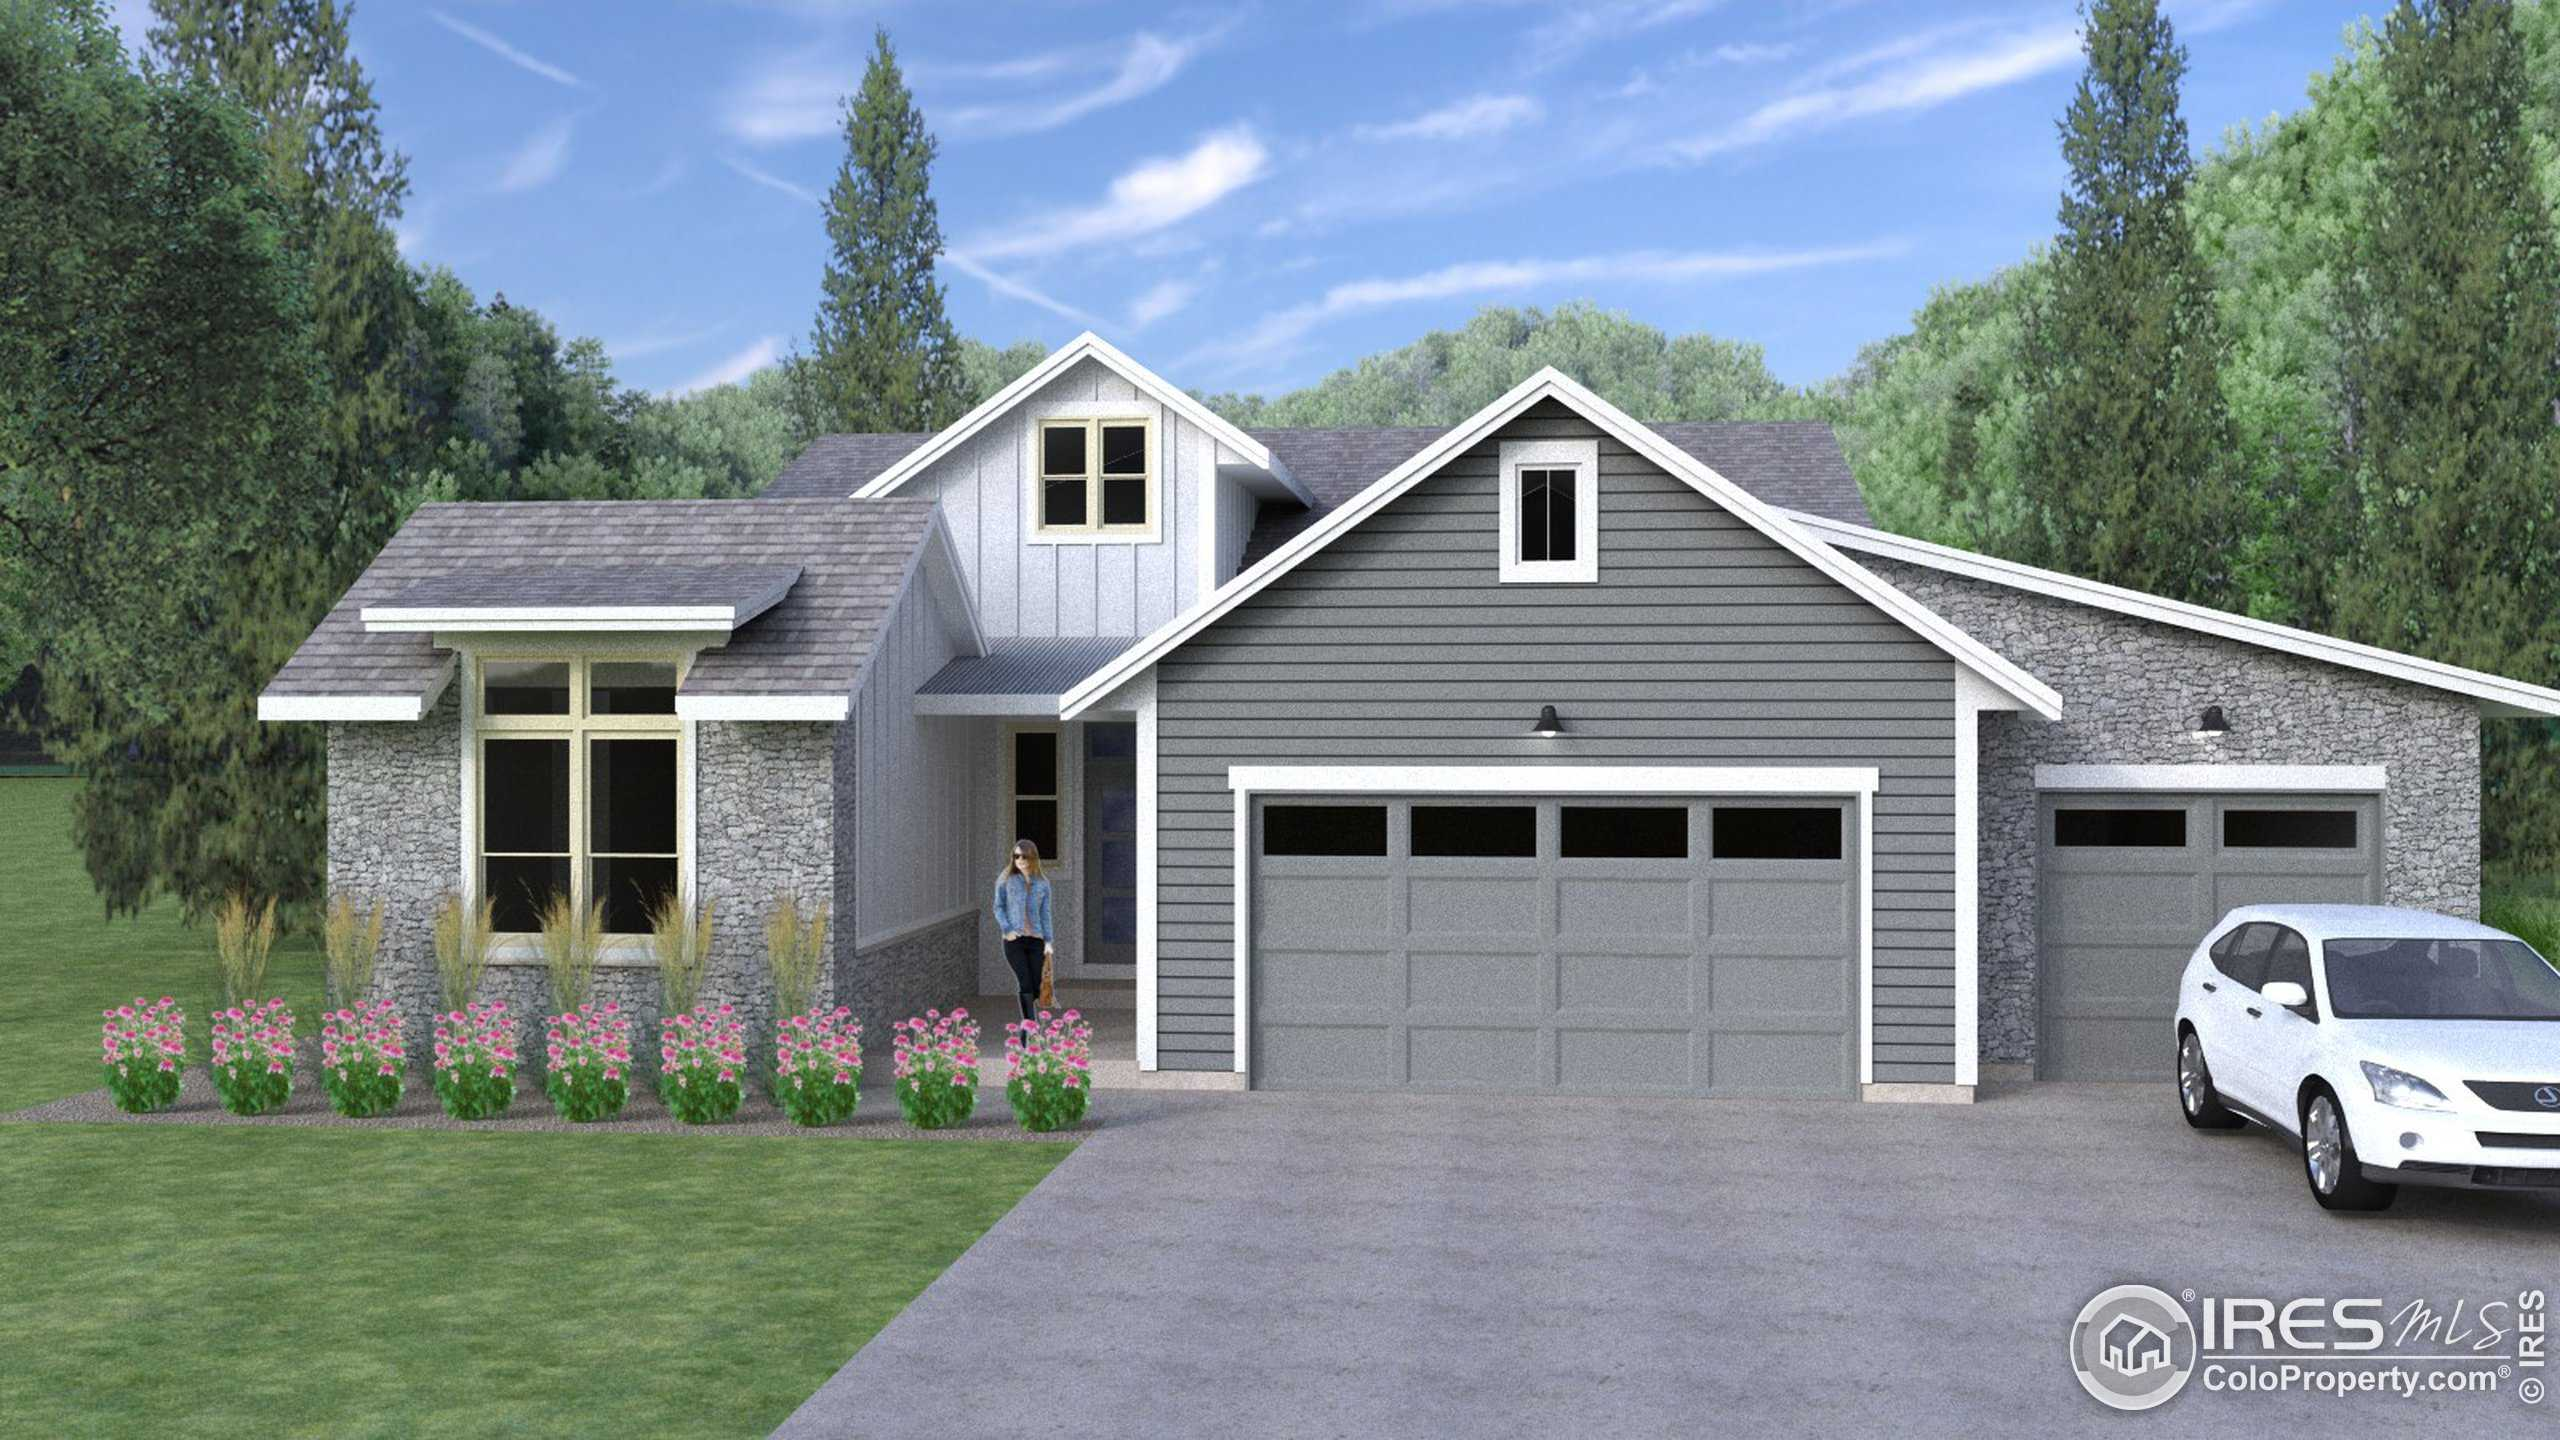 $530,900 - 3Br/2Ba -  for Sale in Tailholt, Severance